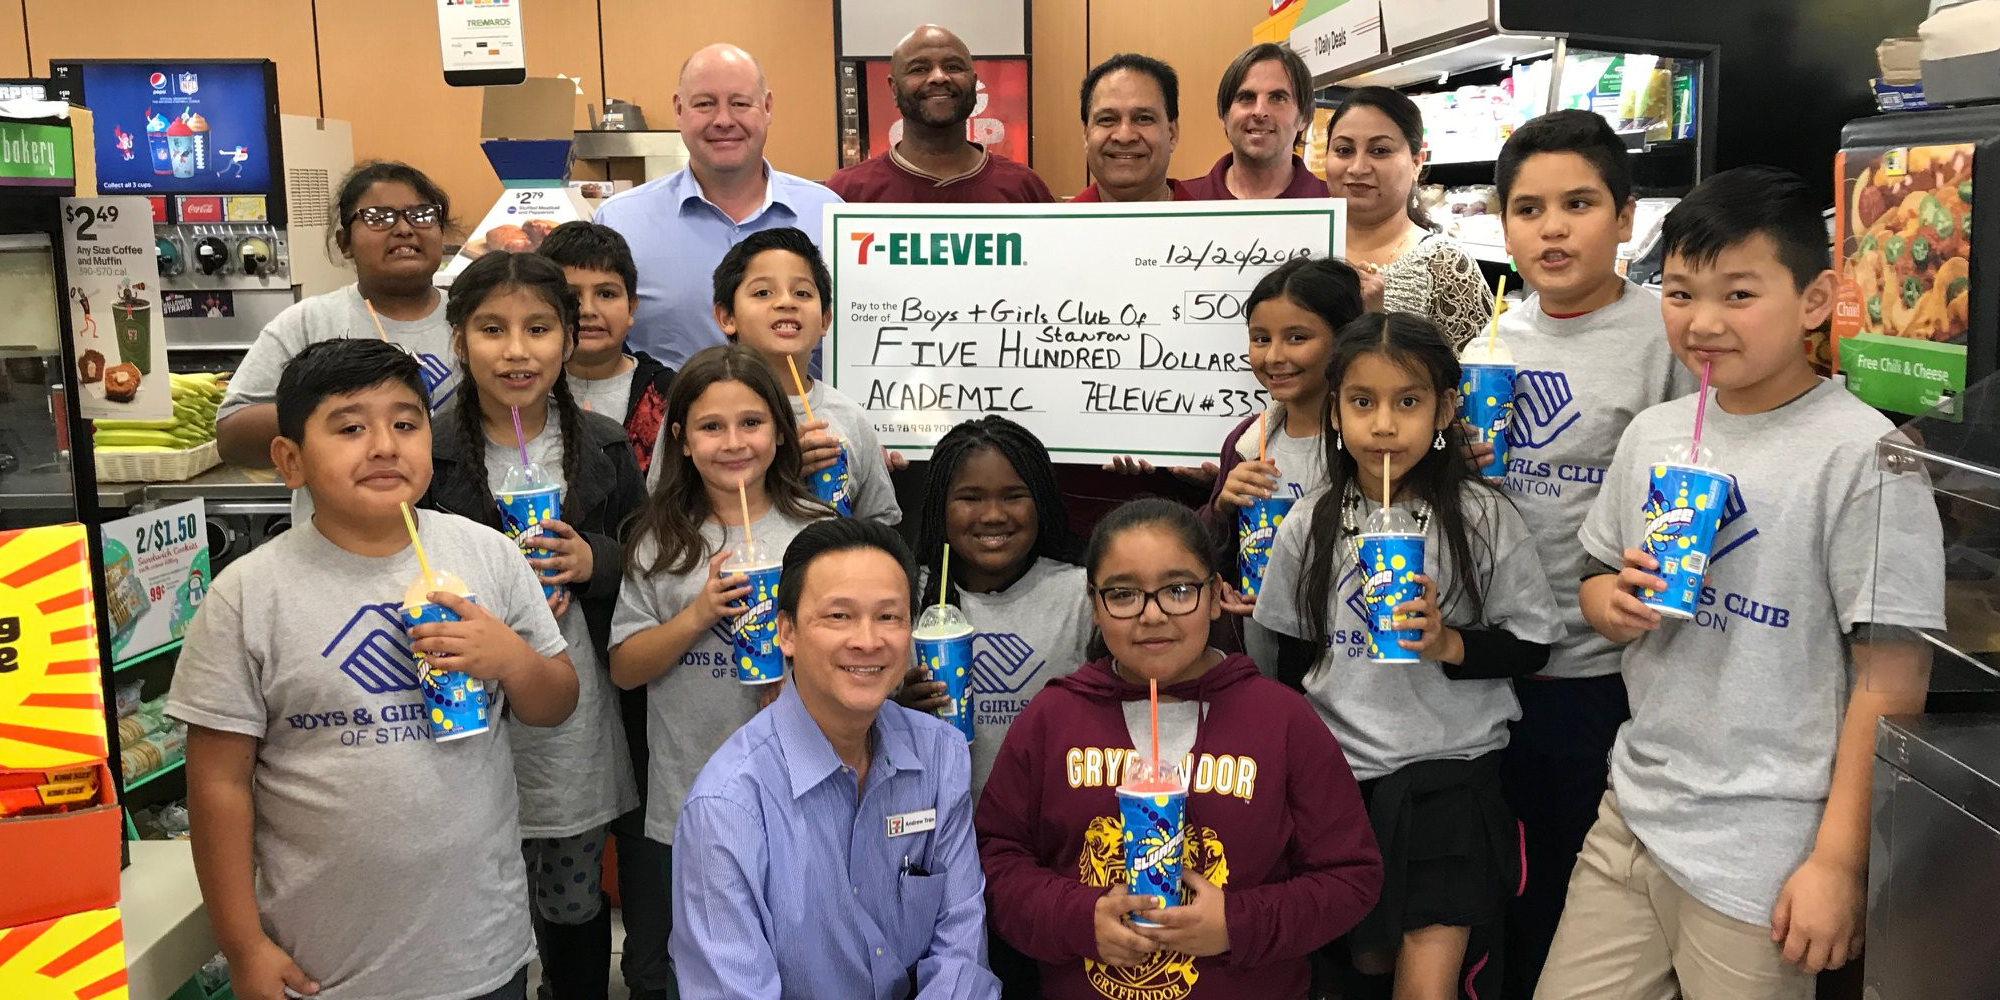 Group of students at 7-eleven holding a large $500 dollar check